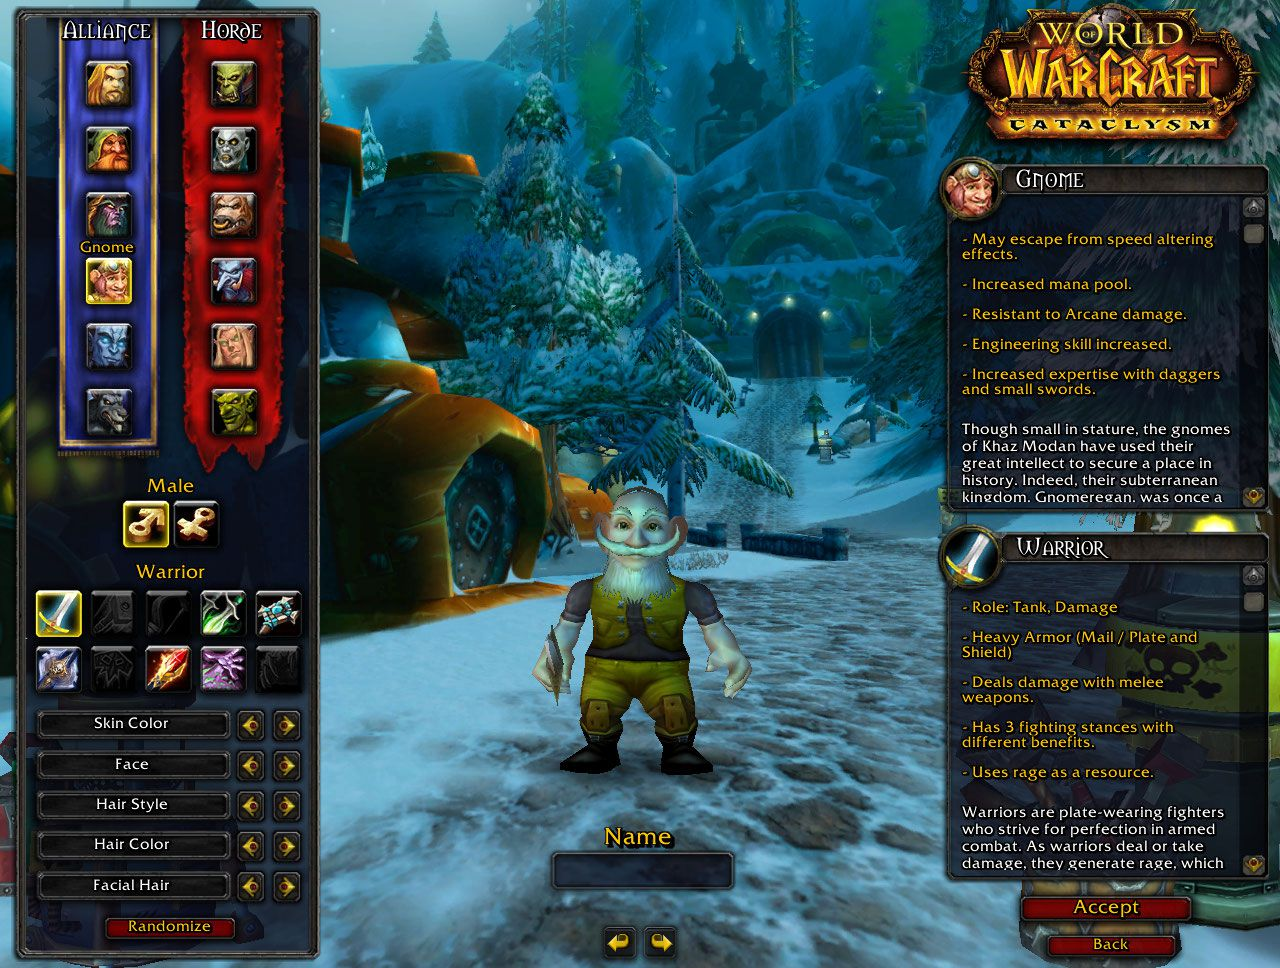 Gnome warrior on WoW nude scenes